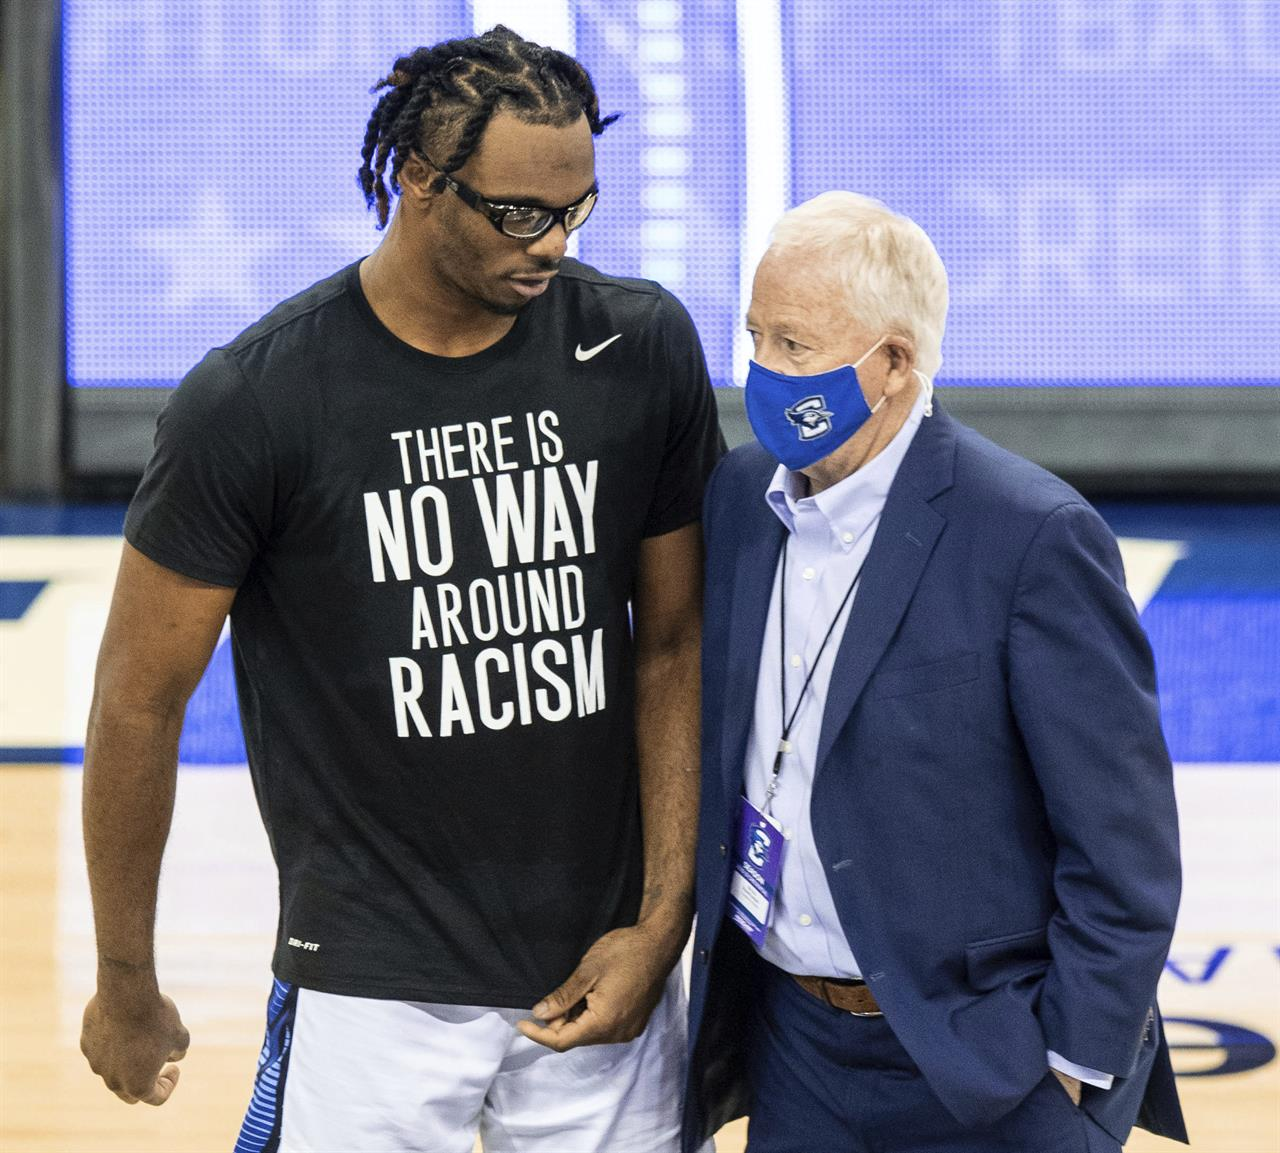 In this March 6, 2021, photo, Creighton's Denzel Mahoney, left, talks to Creighton athletic director Bruce Rasmussen during Senior Day festivities, in Omaha, Neb. Creighton announced Monday, March 8, 2021, it has lifted Greg McDermott's suspension for making racially insensitive remarks to his players after a game last week. Noting McDermott's public apologies and difficult discussions with his players and others, Rasmussen said the coach has shown a willingness to learn from the mistake. (Chris Machian/Omaha World-Herald via AP)